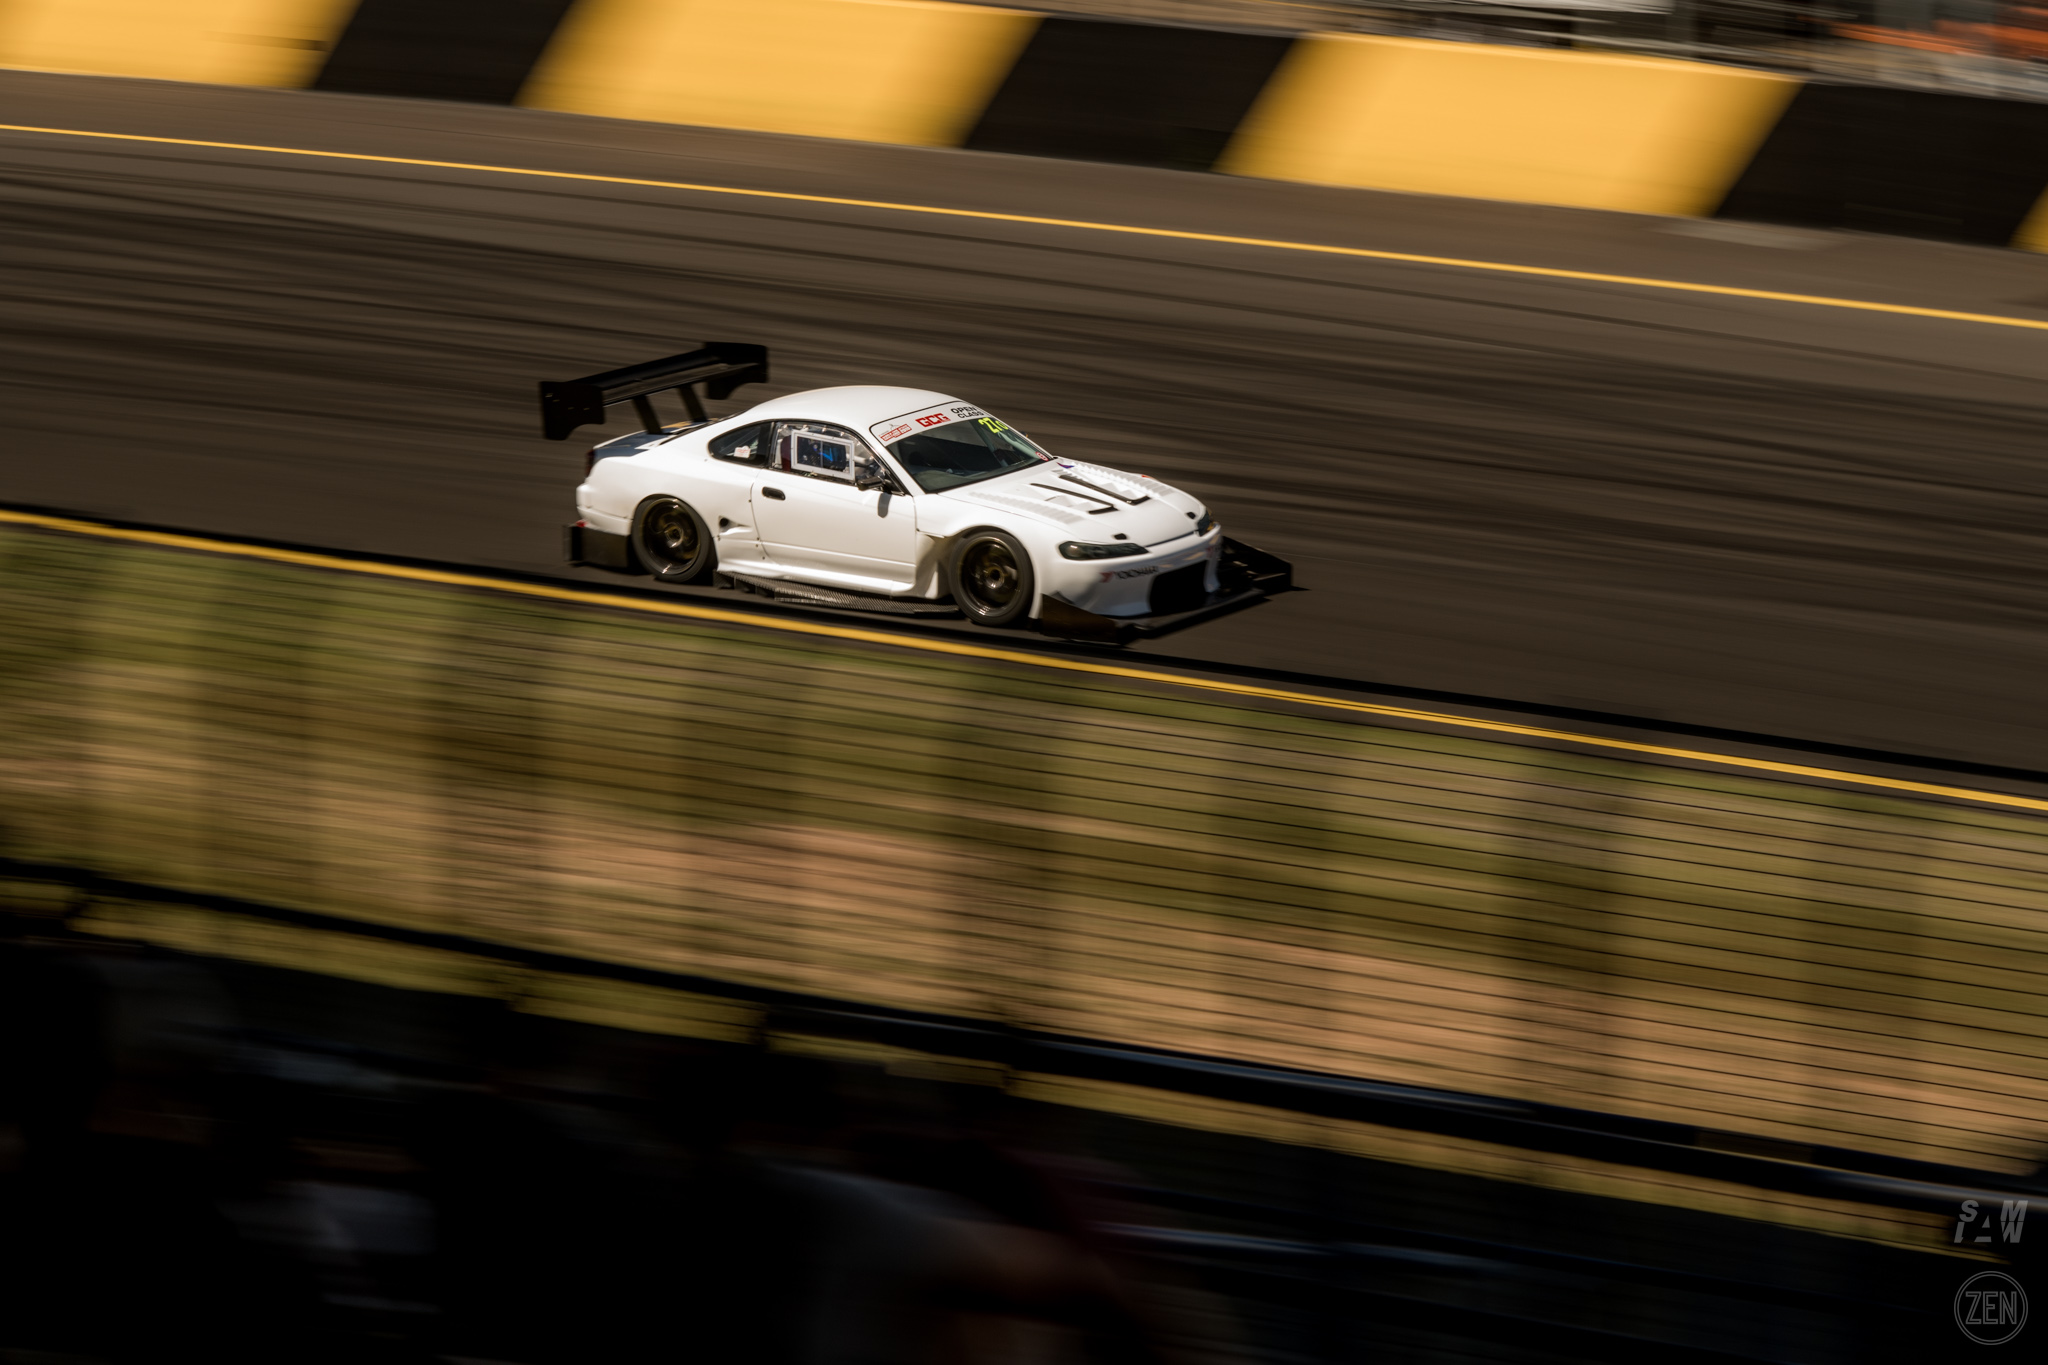 2019-10-19 - WTAC Day 2 009